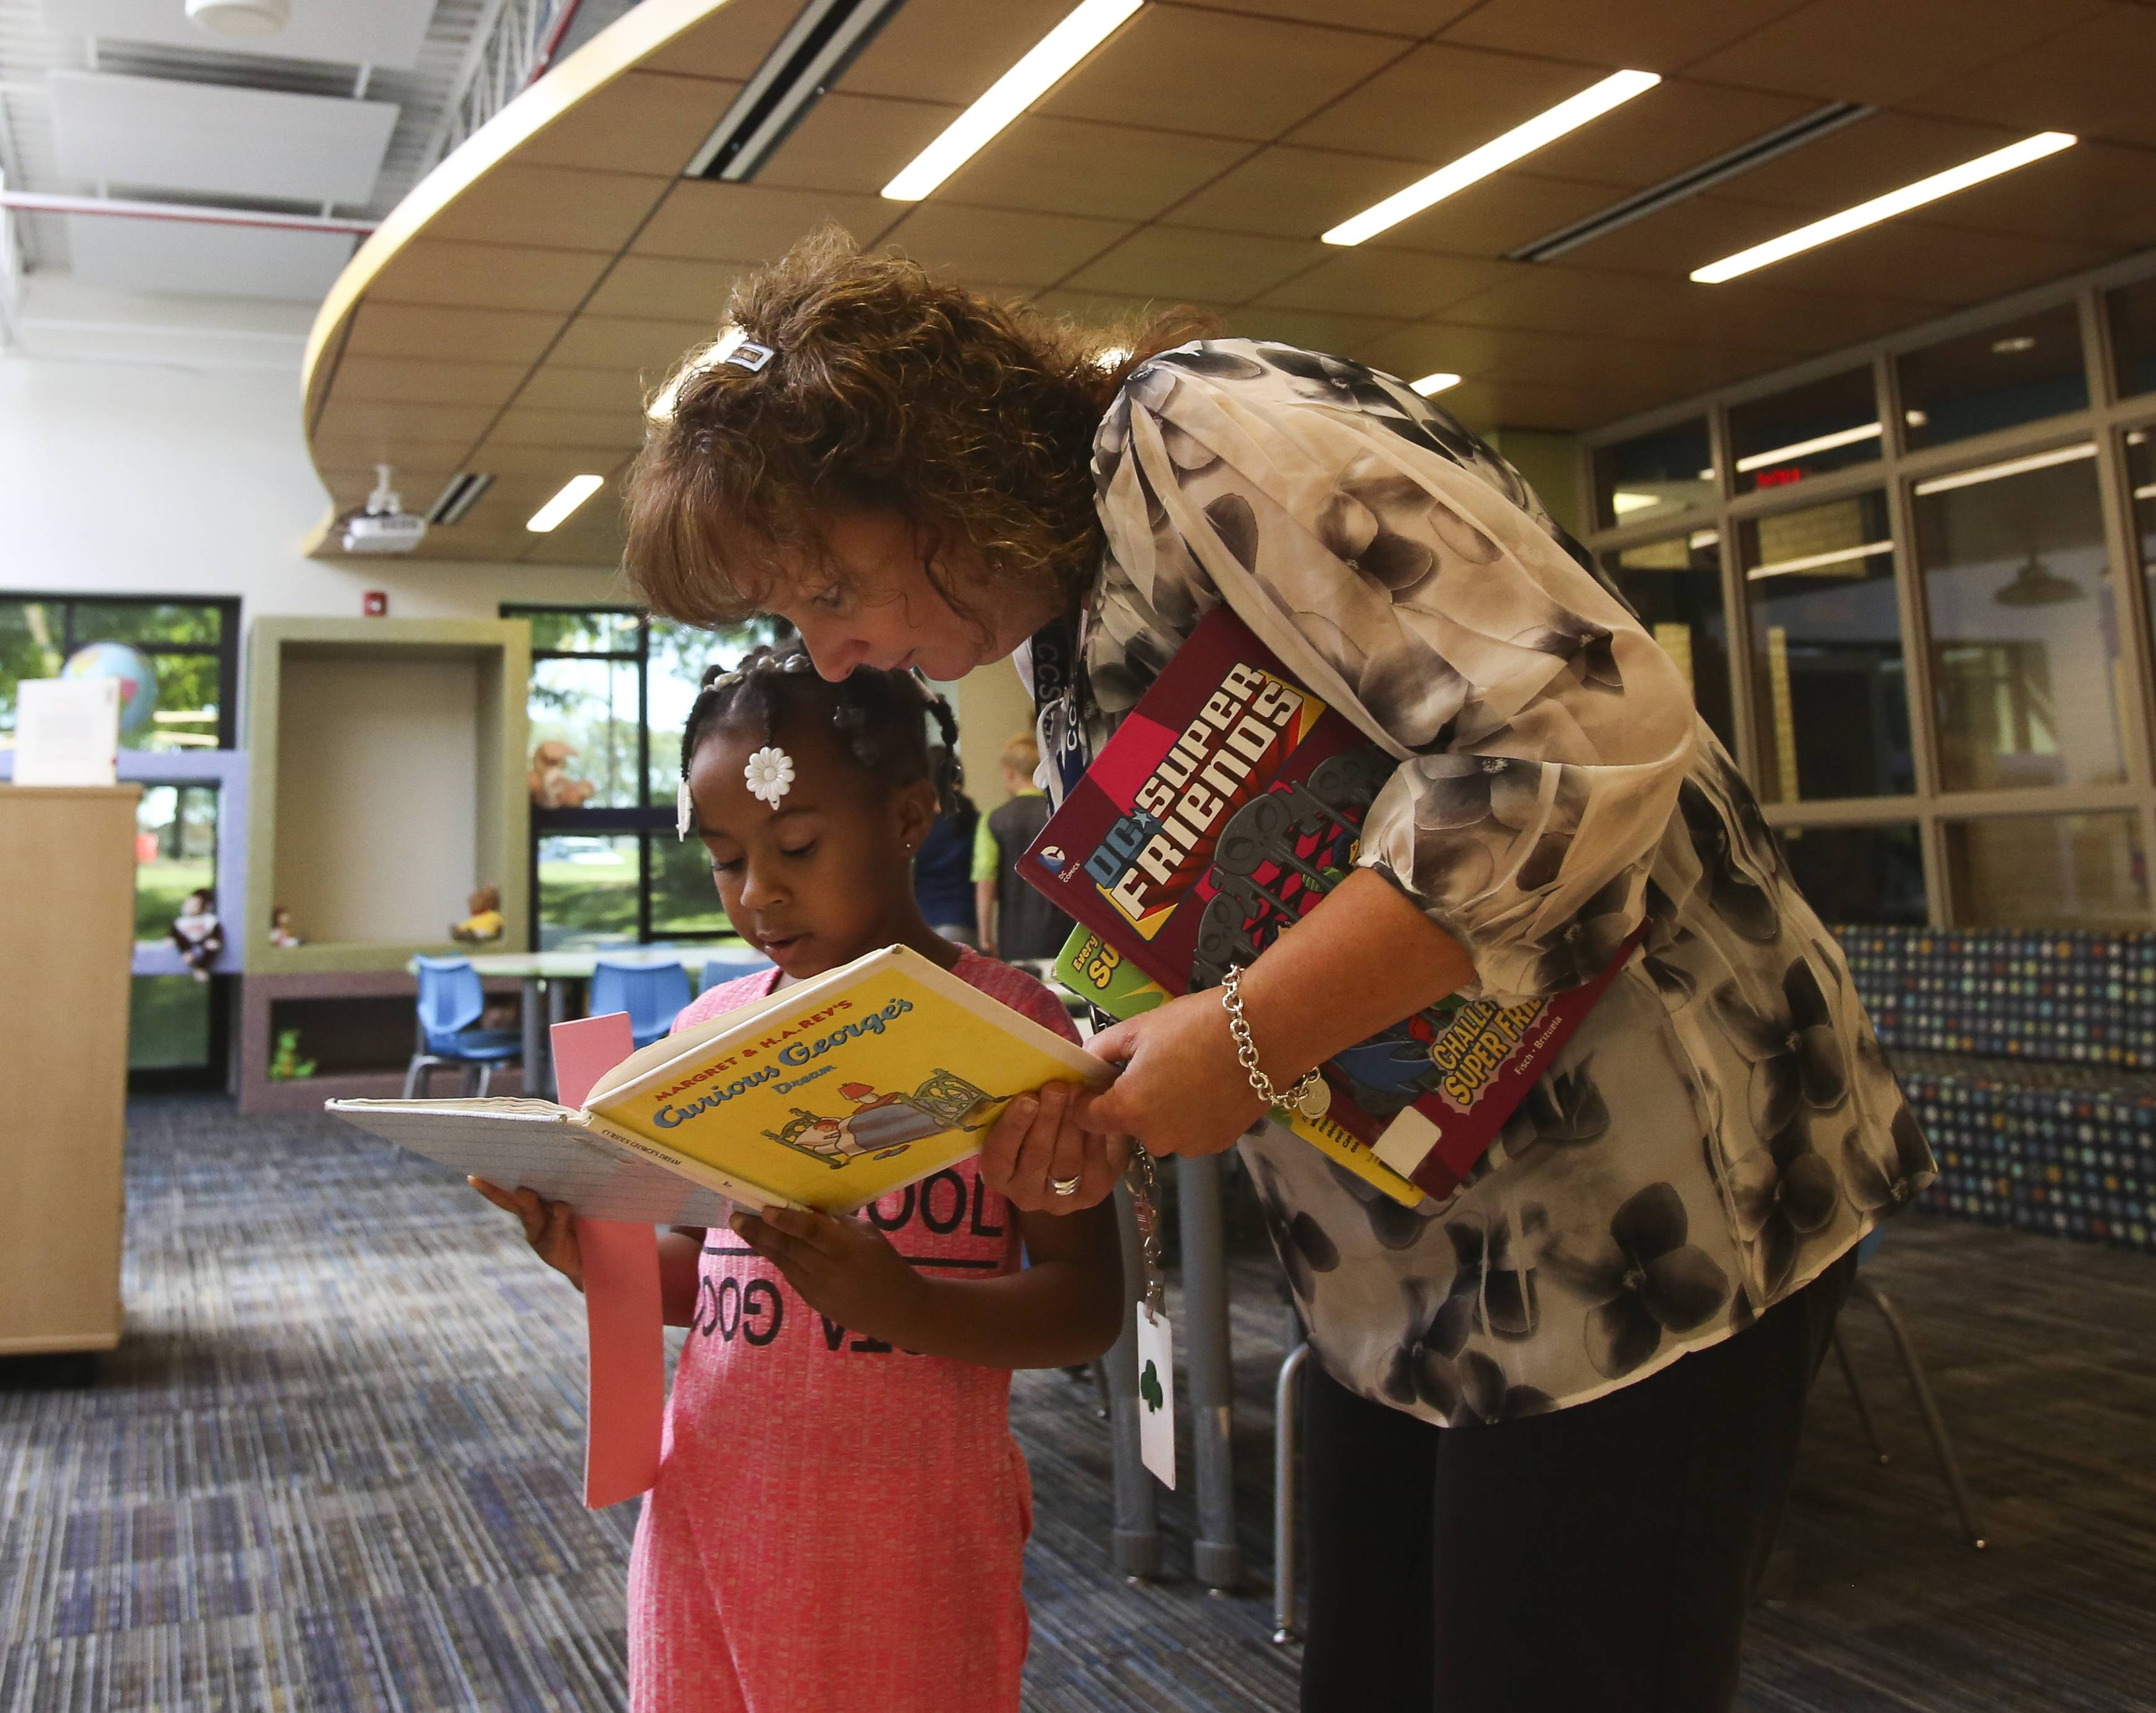 Second-grade teacher Kathy Siciliano reads alongside student J'Niaya Harris in the new Innovation Center at Roy DeShane Elementary School in Carol Stream.